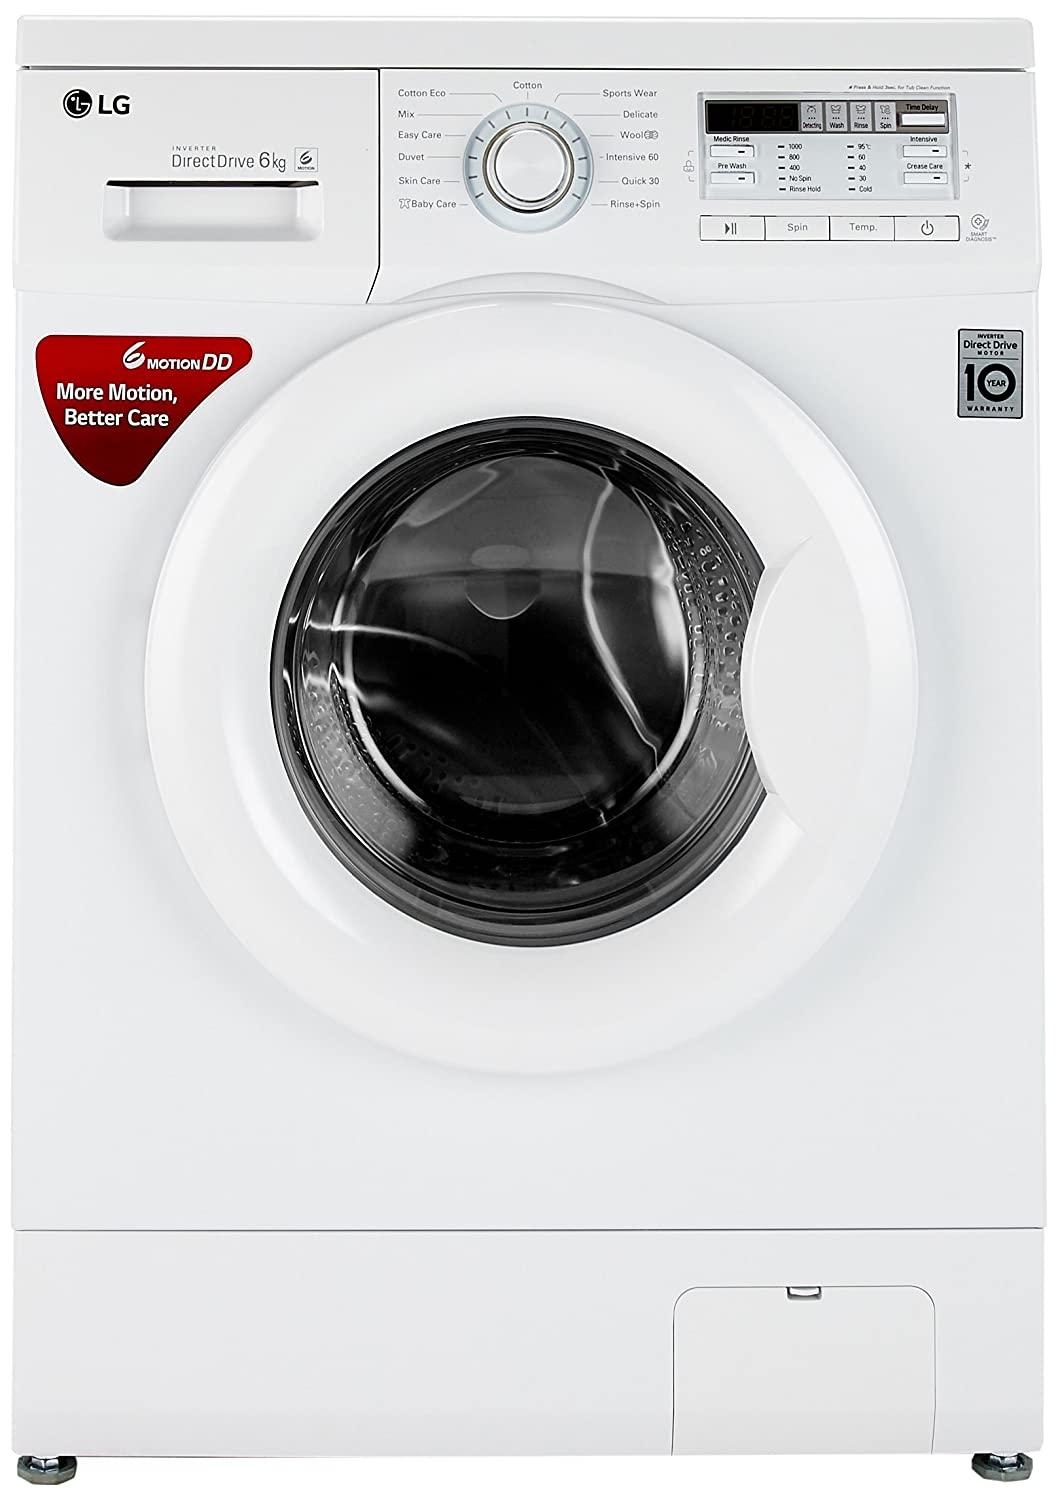 How Front load Washing Machine is better than Top load Washing machine?